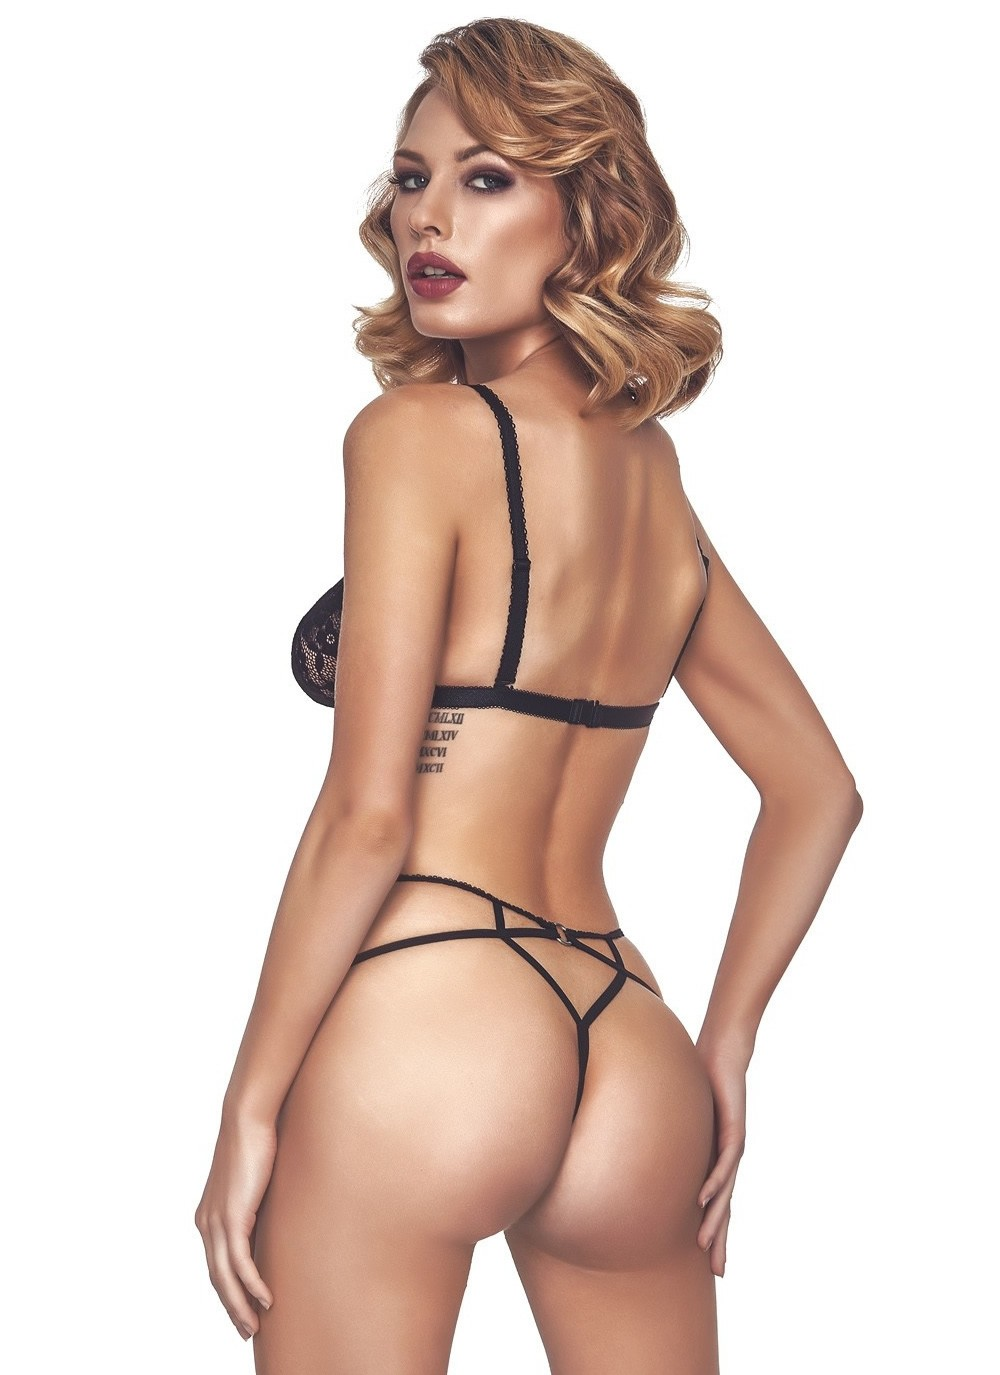 Alcyone Lace Strappy Cage Panty.